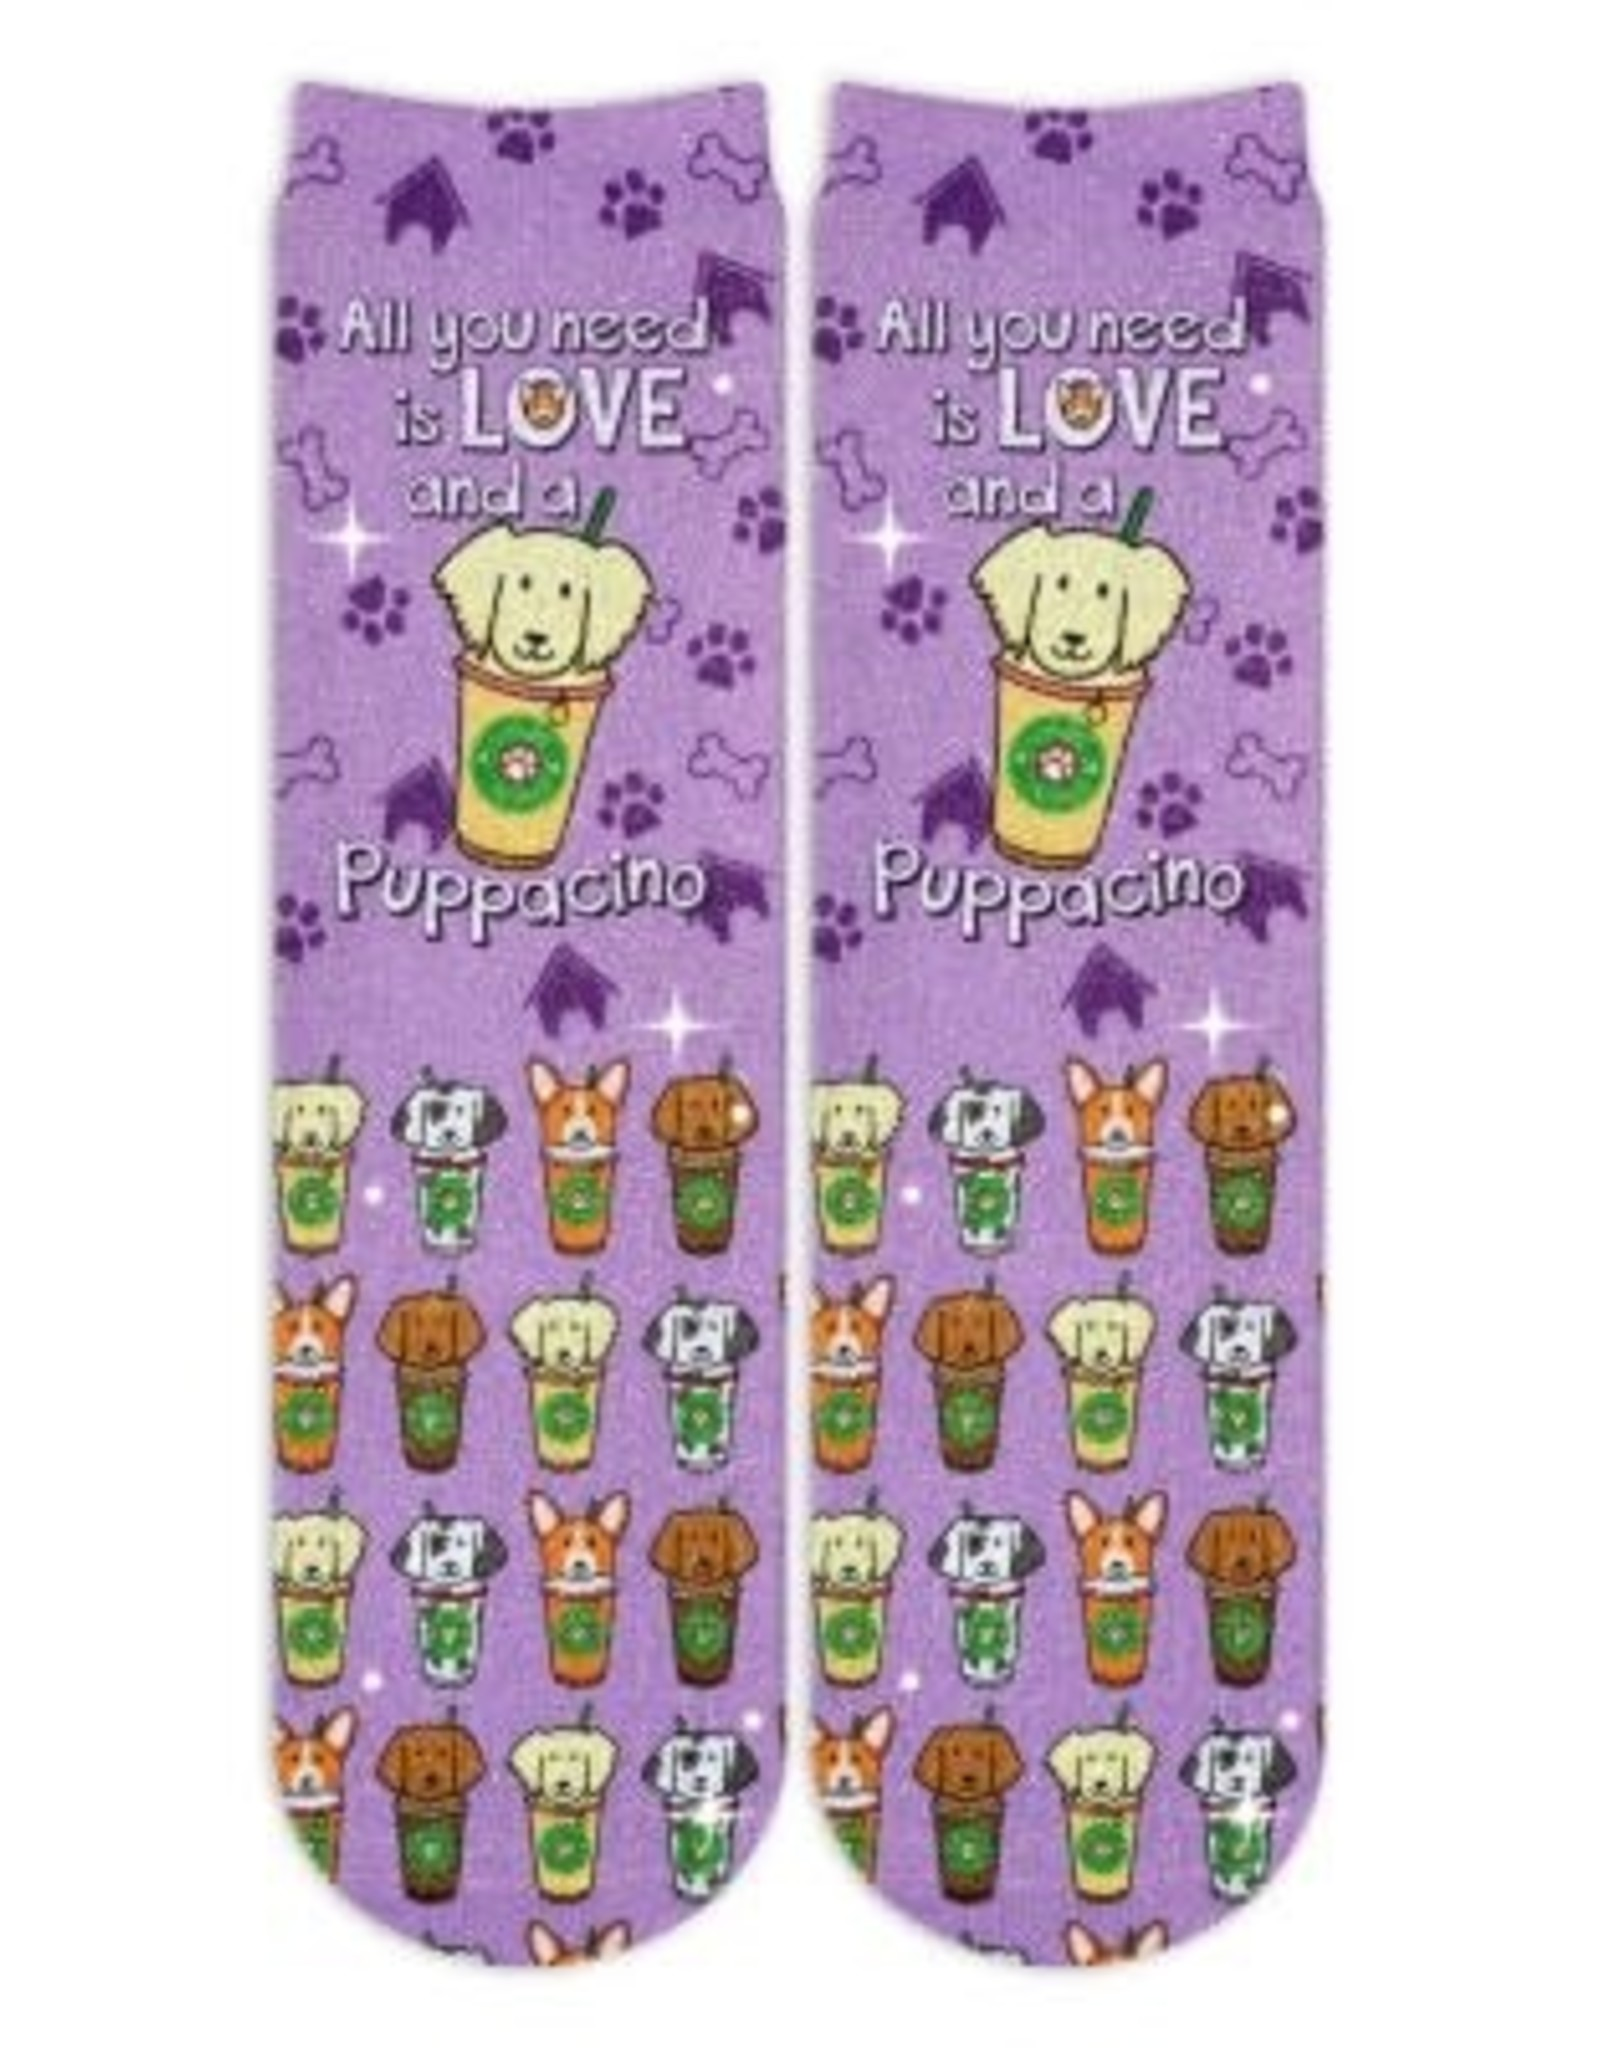 Sublime Designs Puppacino Shimmer Socks(PCO) Shoe Size 11-4